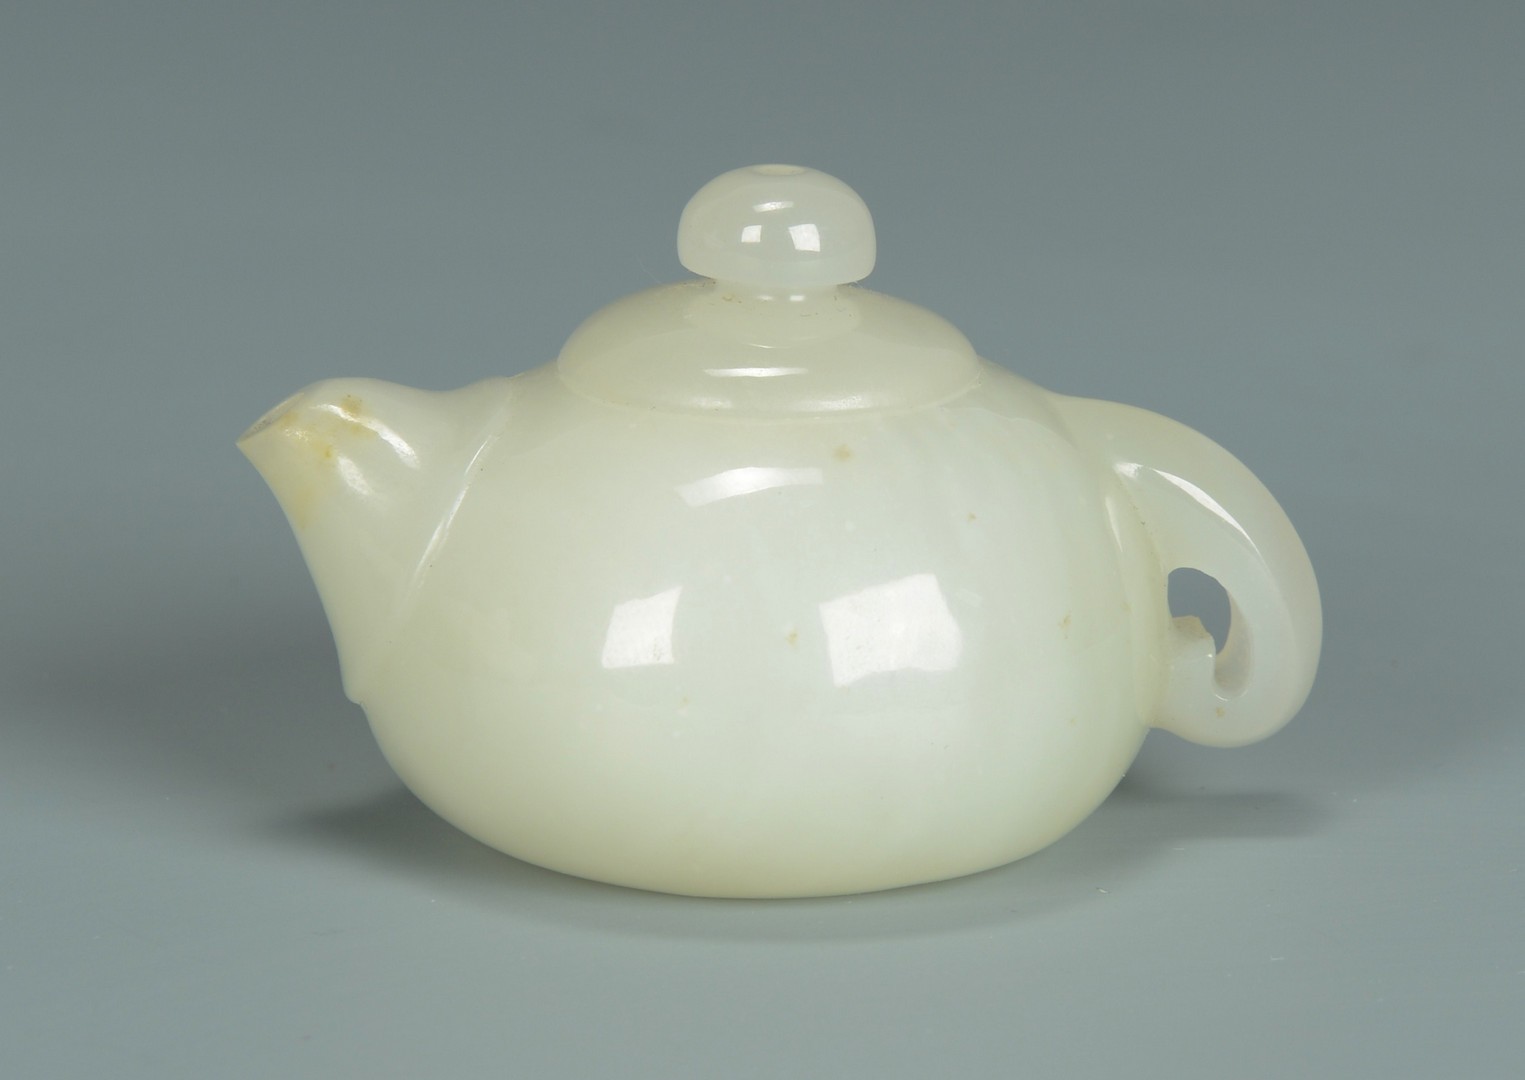 Lot 3383185: Chinese White Jade Tea Pot